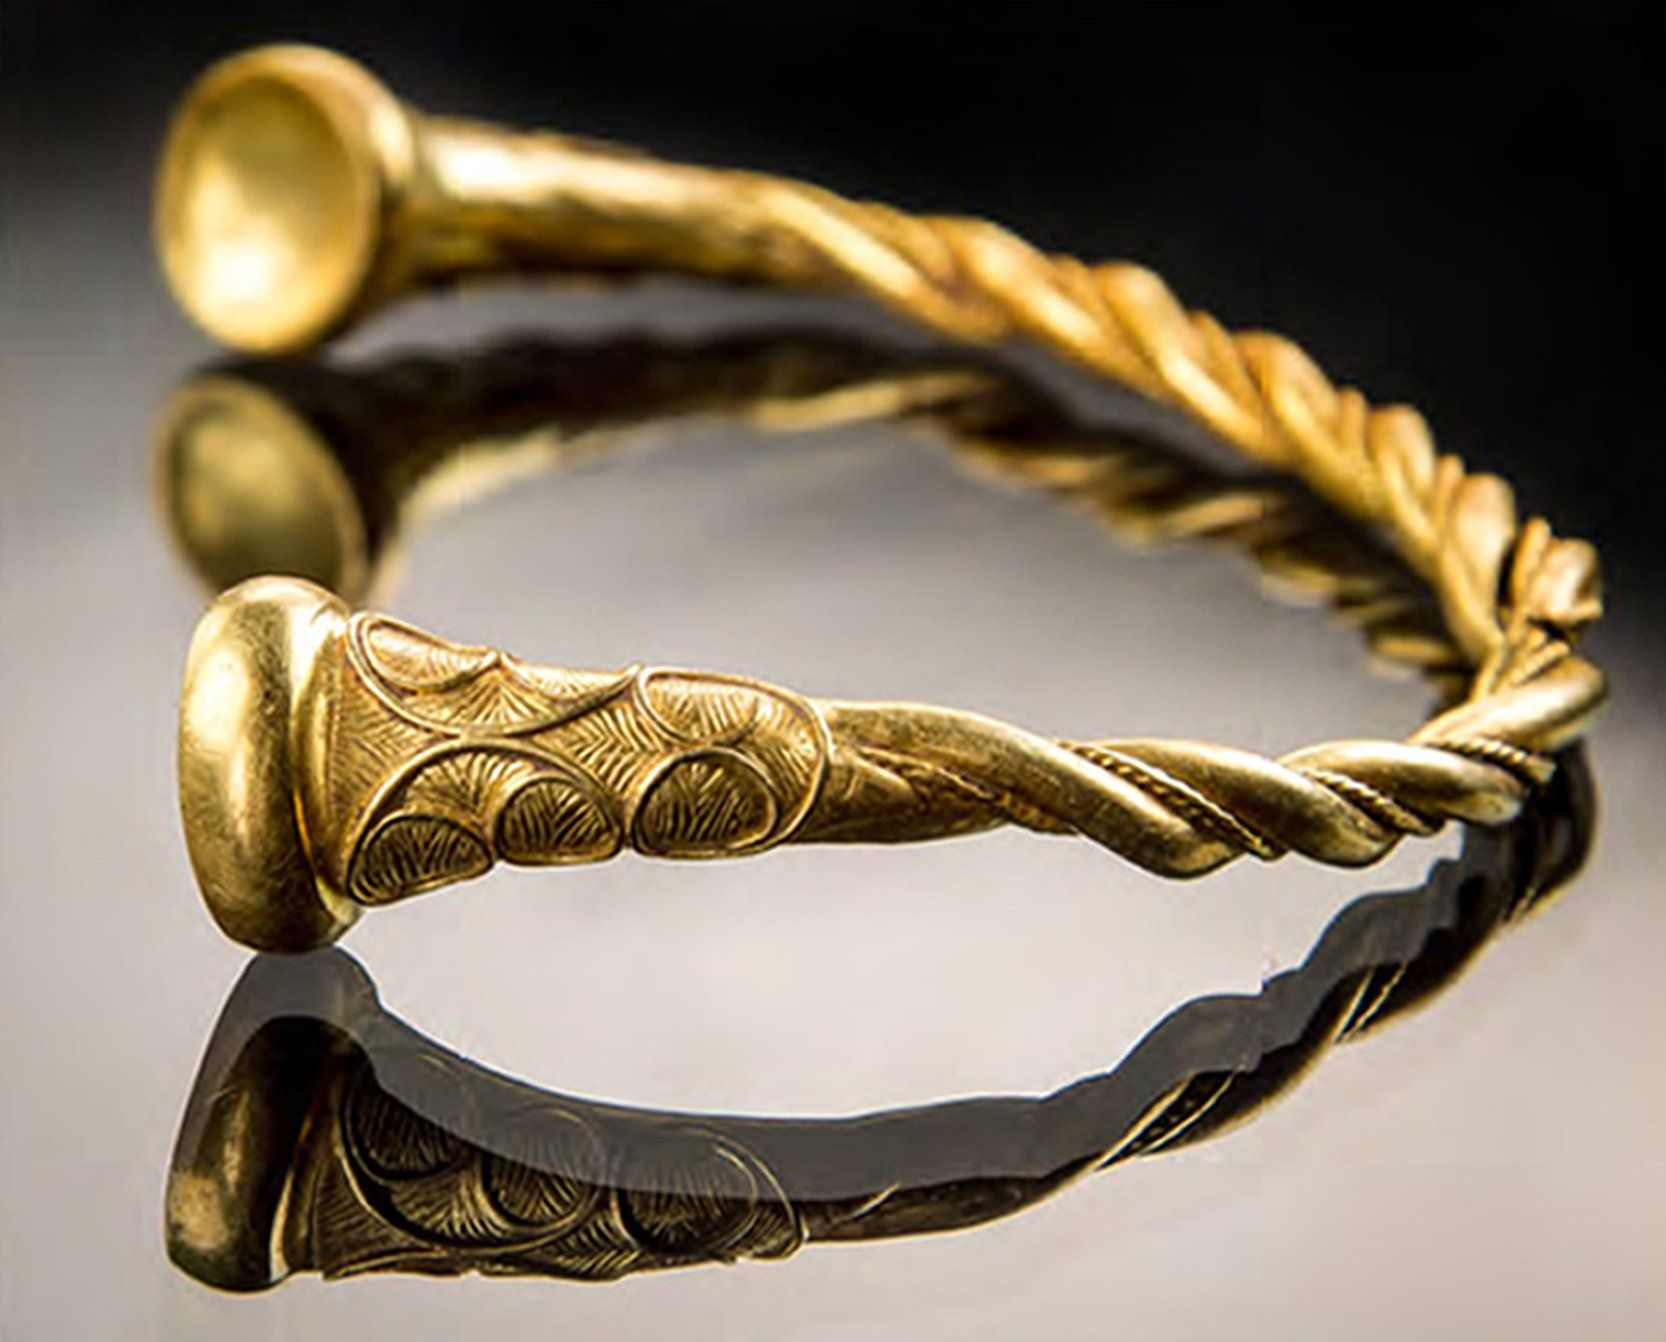 2500 YearOld Gold Jewelry Unearthed in England